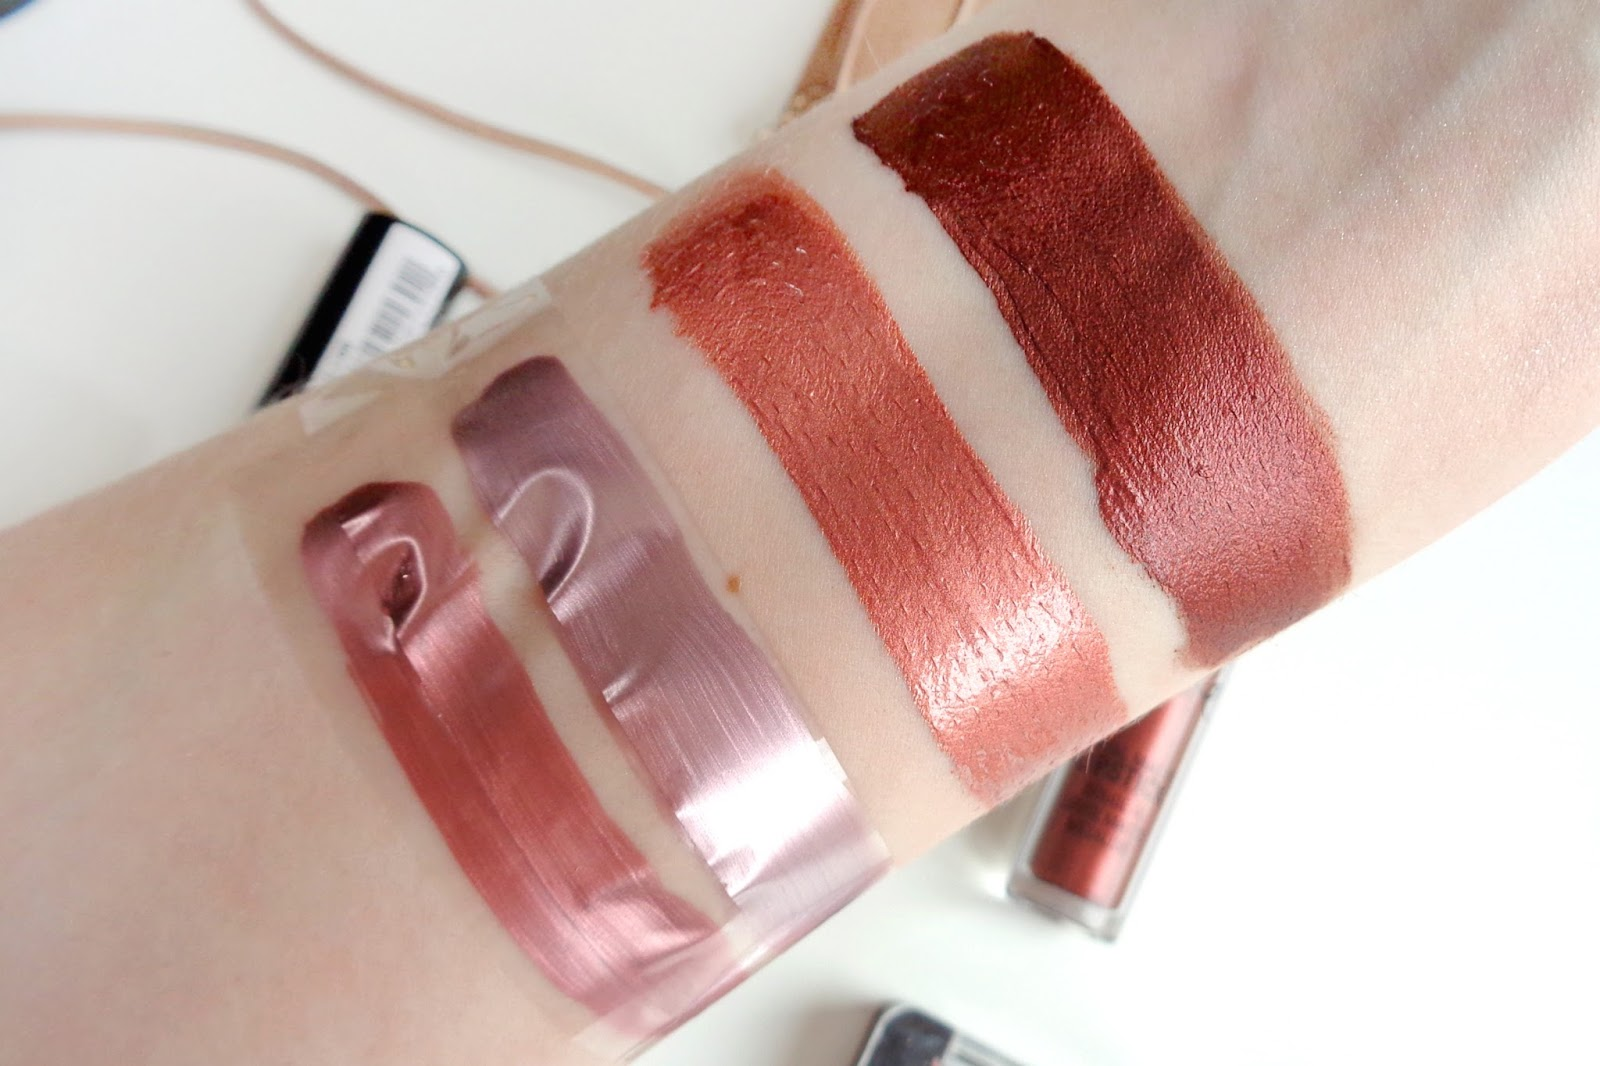 p2 Nail Polish 030 Bronze Cut swatch, p2 Nail Polisch 050 Frozen Rose swatch, NYX Cosmic Metals Speed Of Light swatch, Kylie Cosmetics Reign swatch